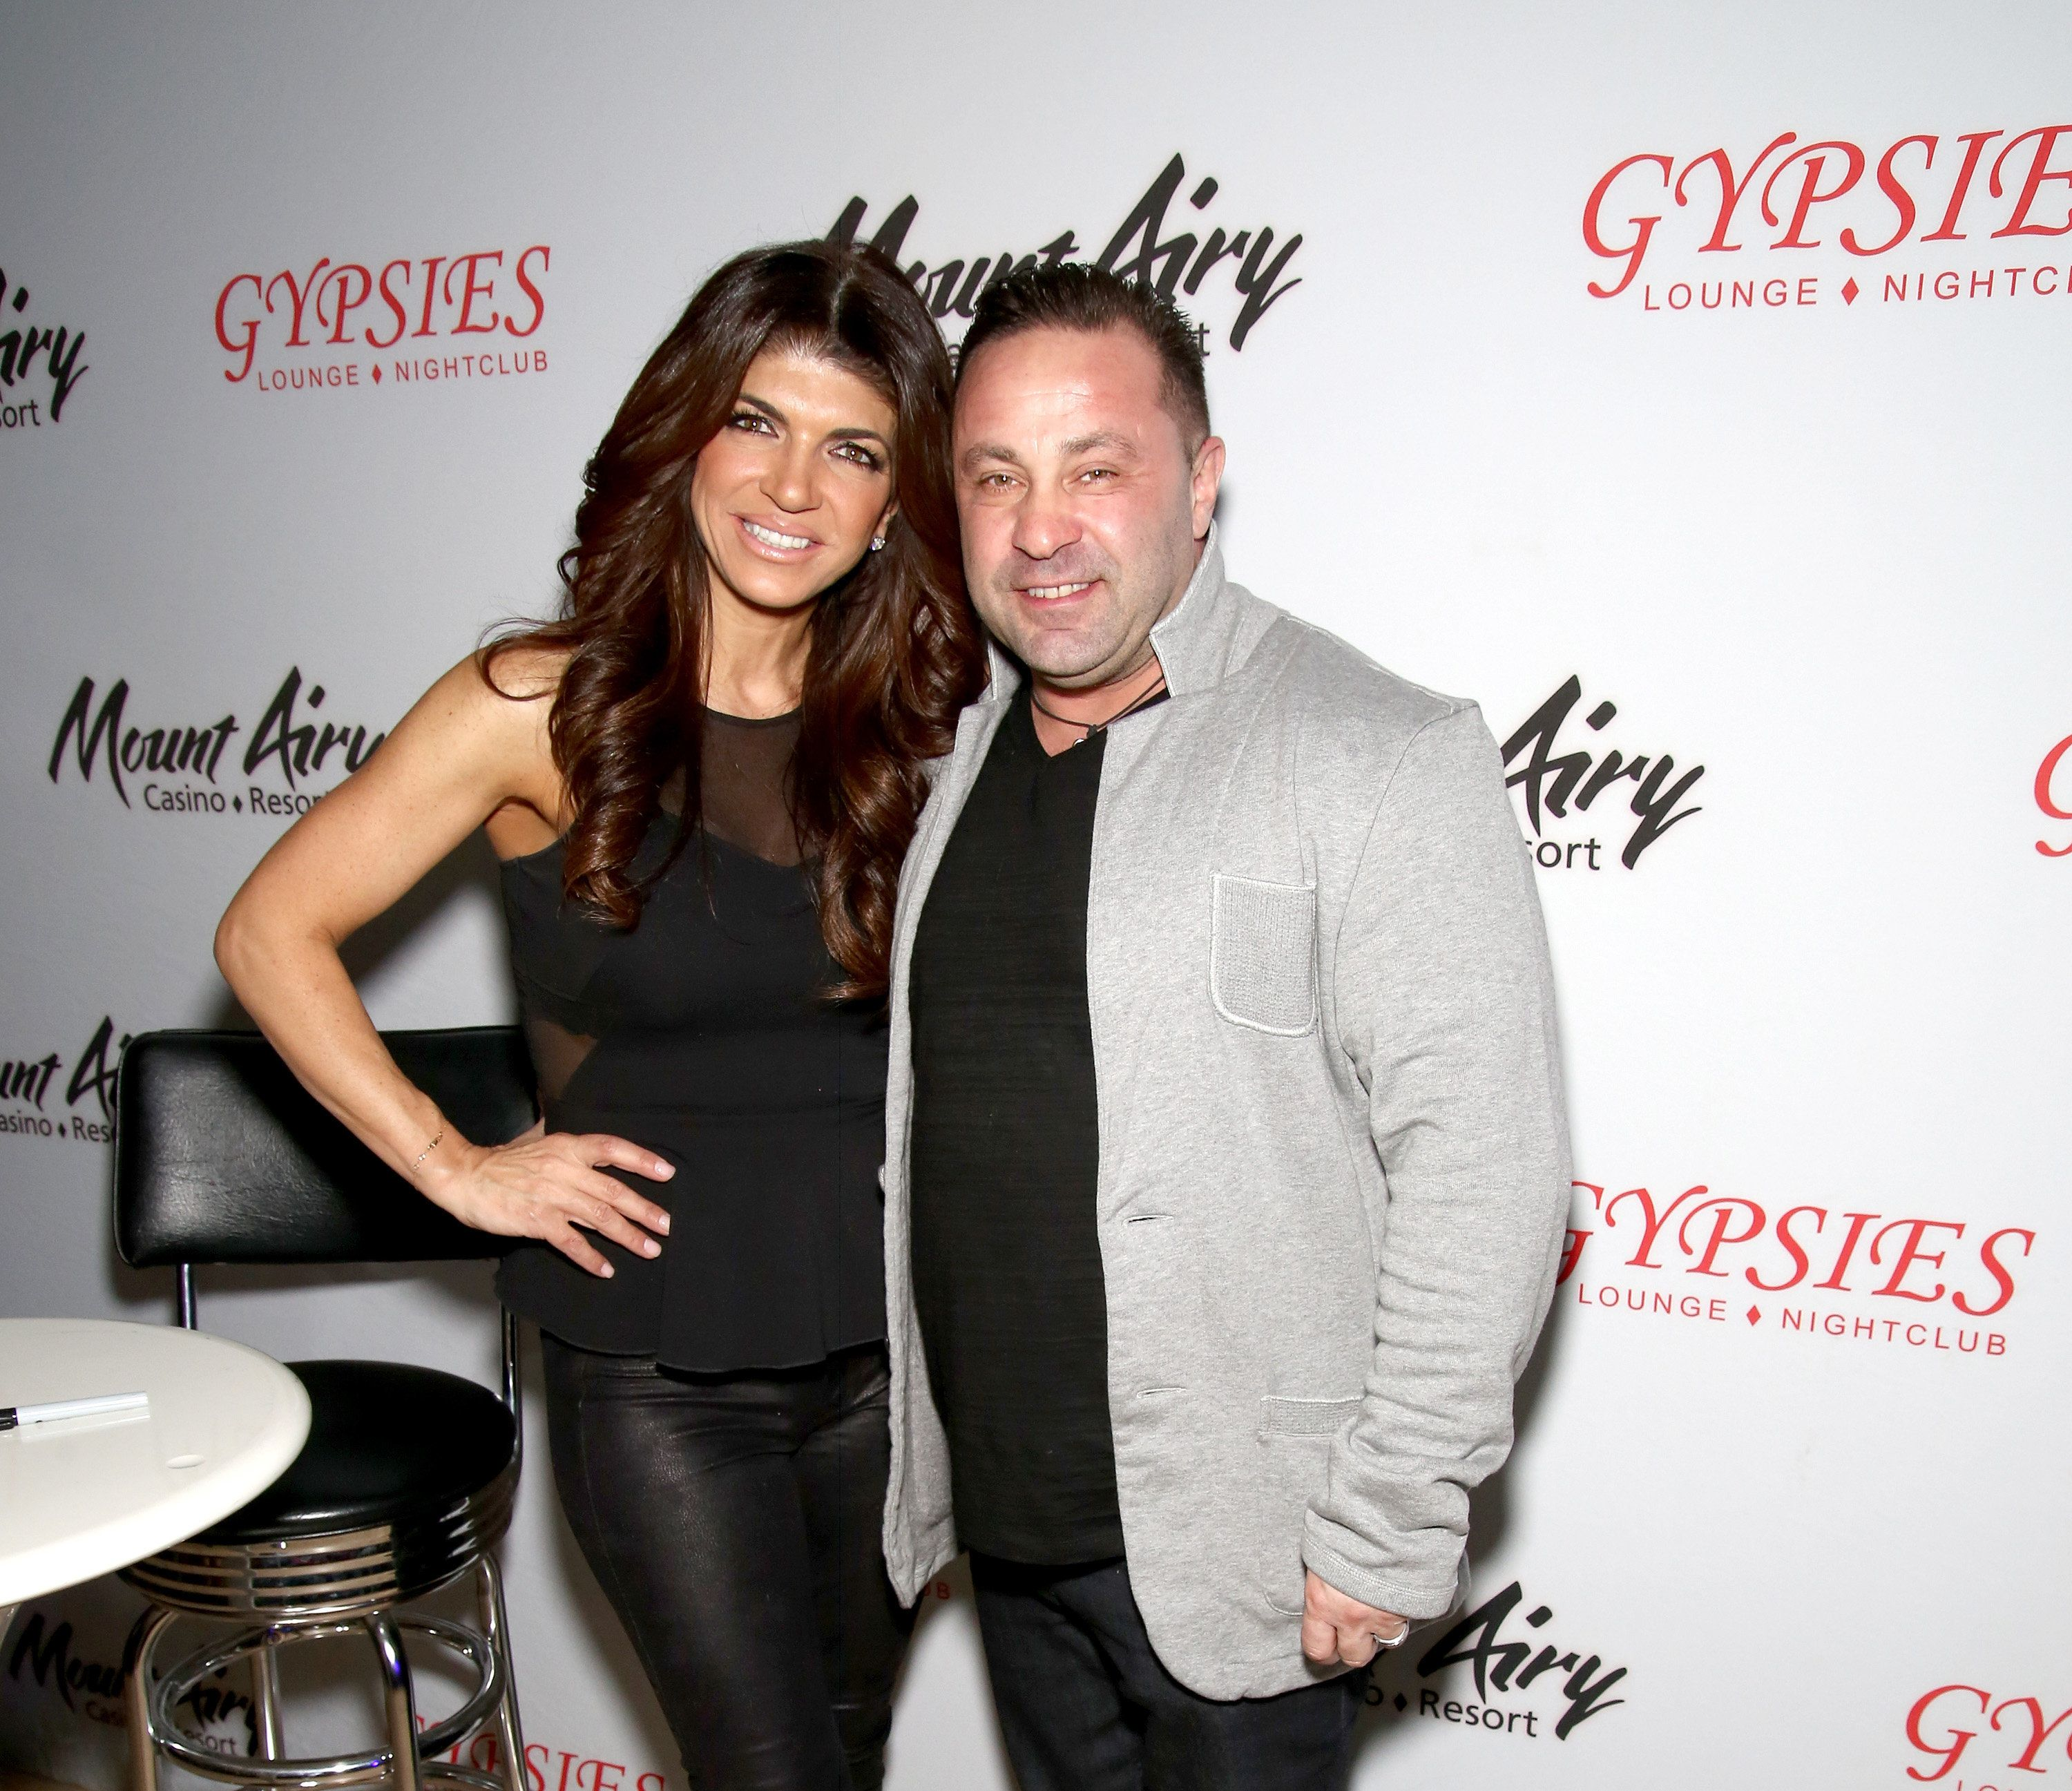 'Real Housewives' Star Joe Giudice To Be Deported After Prison Time""